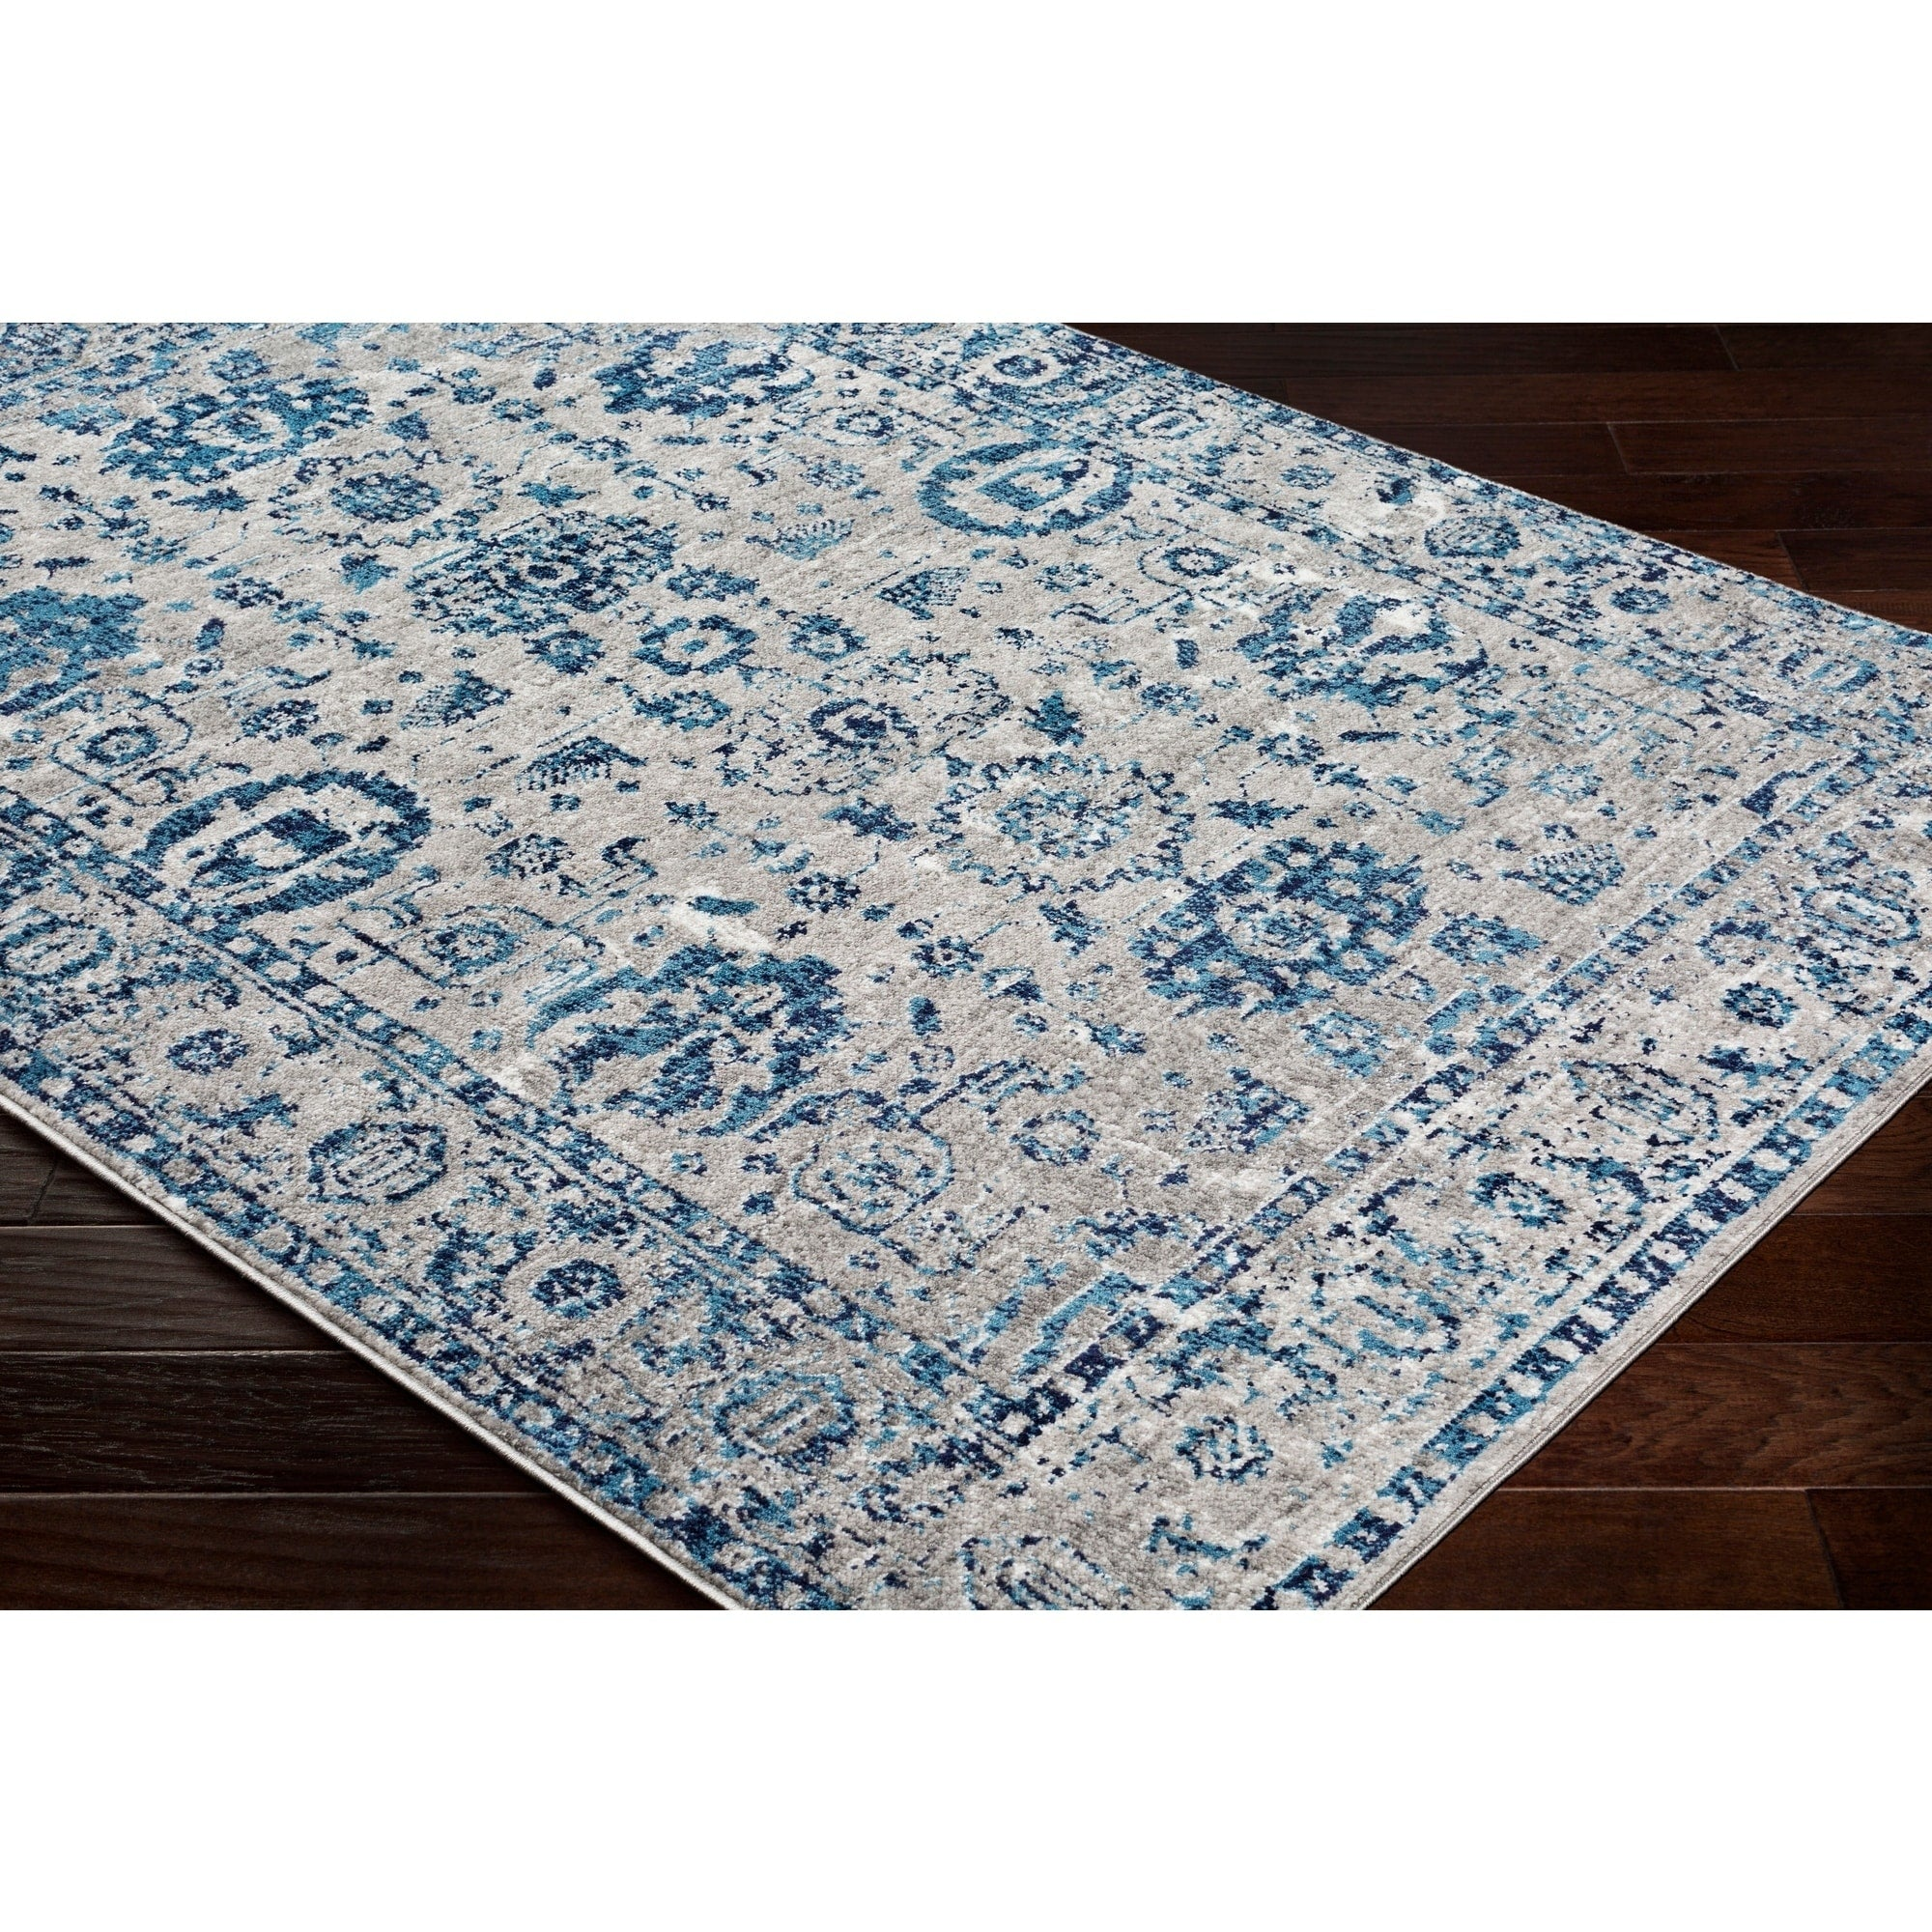 Traditional Distressed Persian Pattern Sky Blue Light Gray